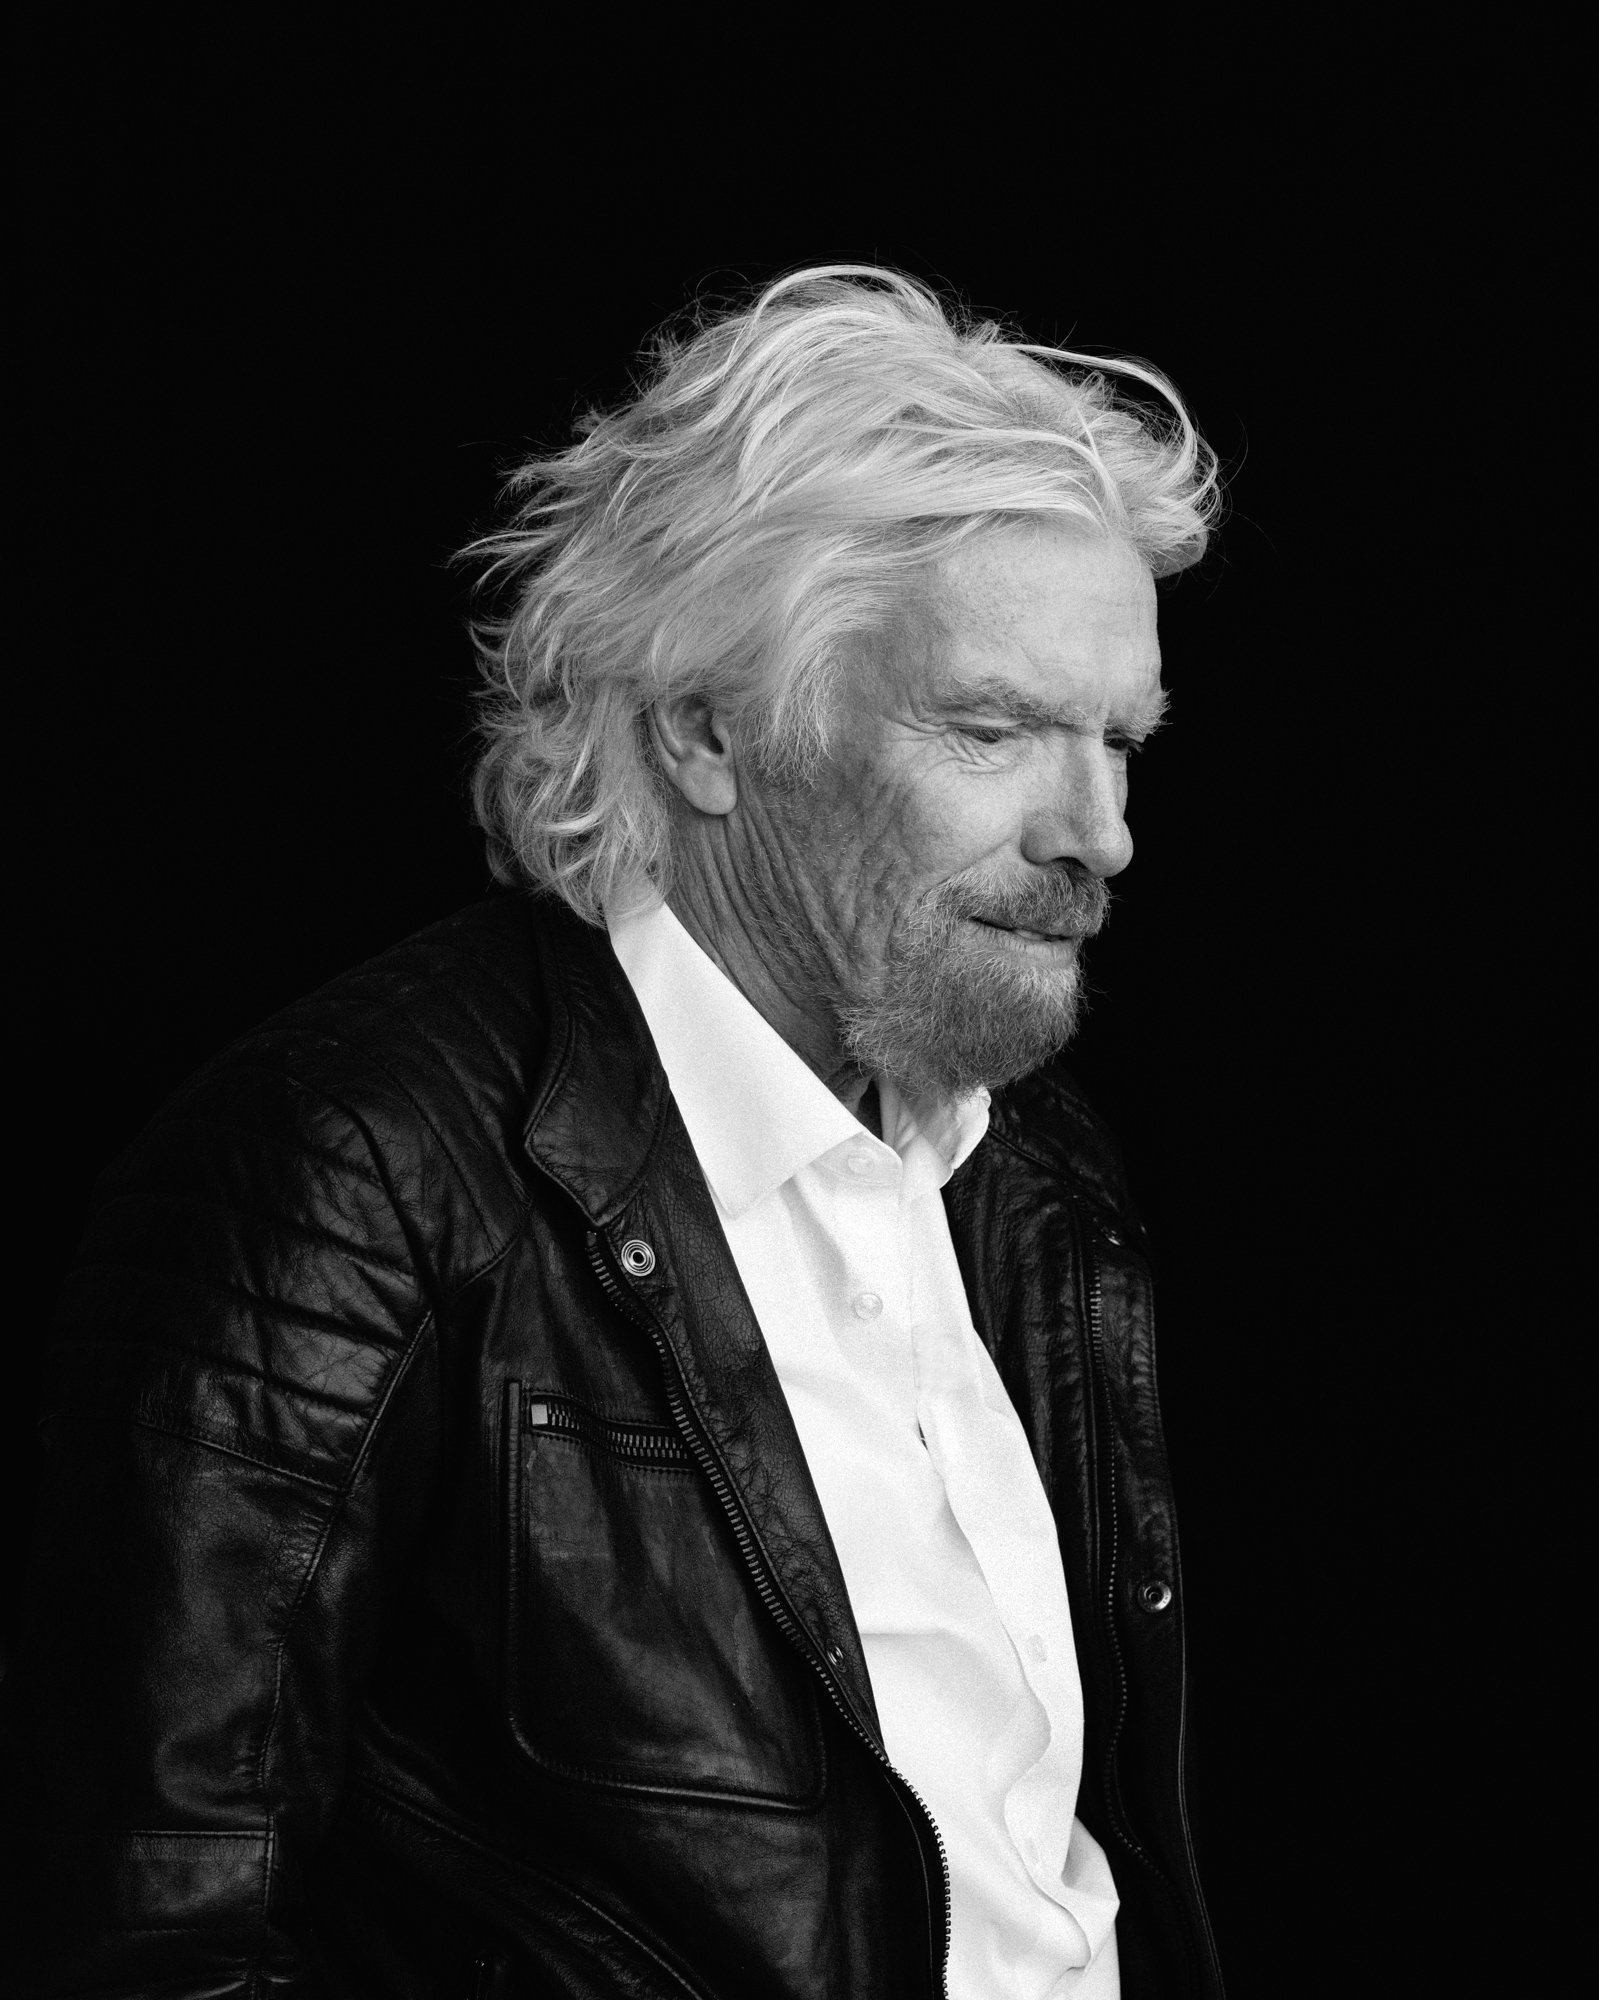 WEB_RichardBranson01.jpg